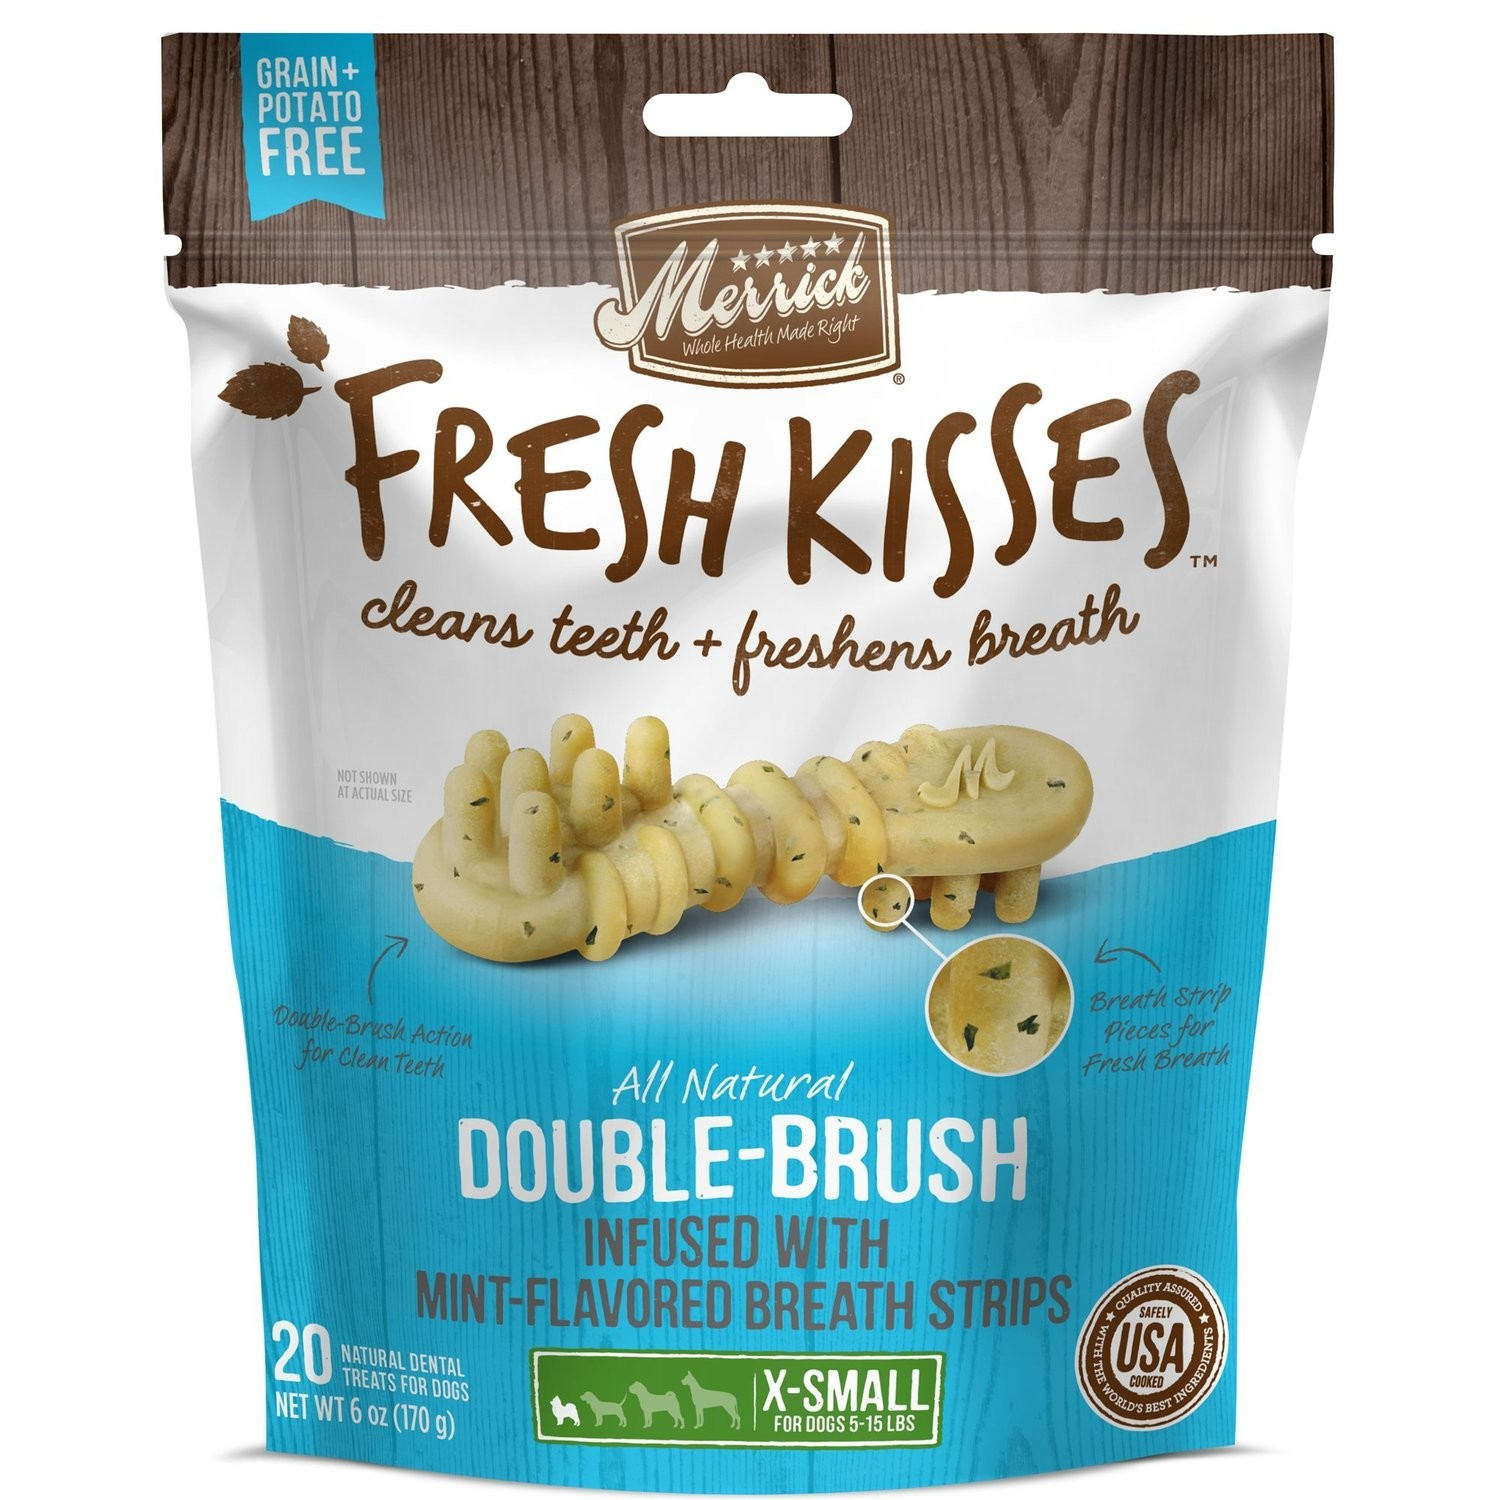 MERRICK FRESH KISSES DOUBLE-BRUSH MINT- FLAOR X-SMALL 5 TO 15 LBS. 20 COUNT 6 OZ (4/19) (T.A6/DT)